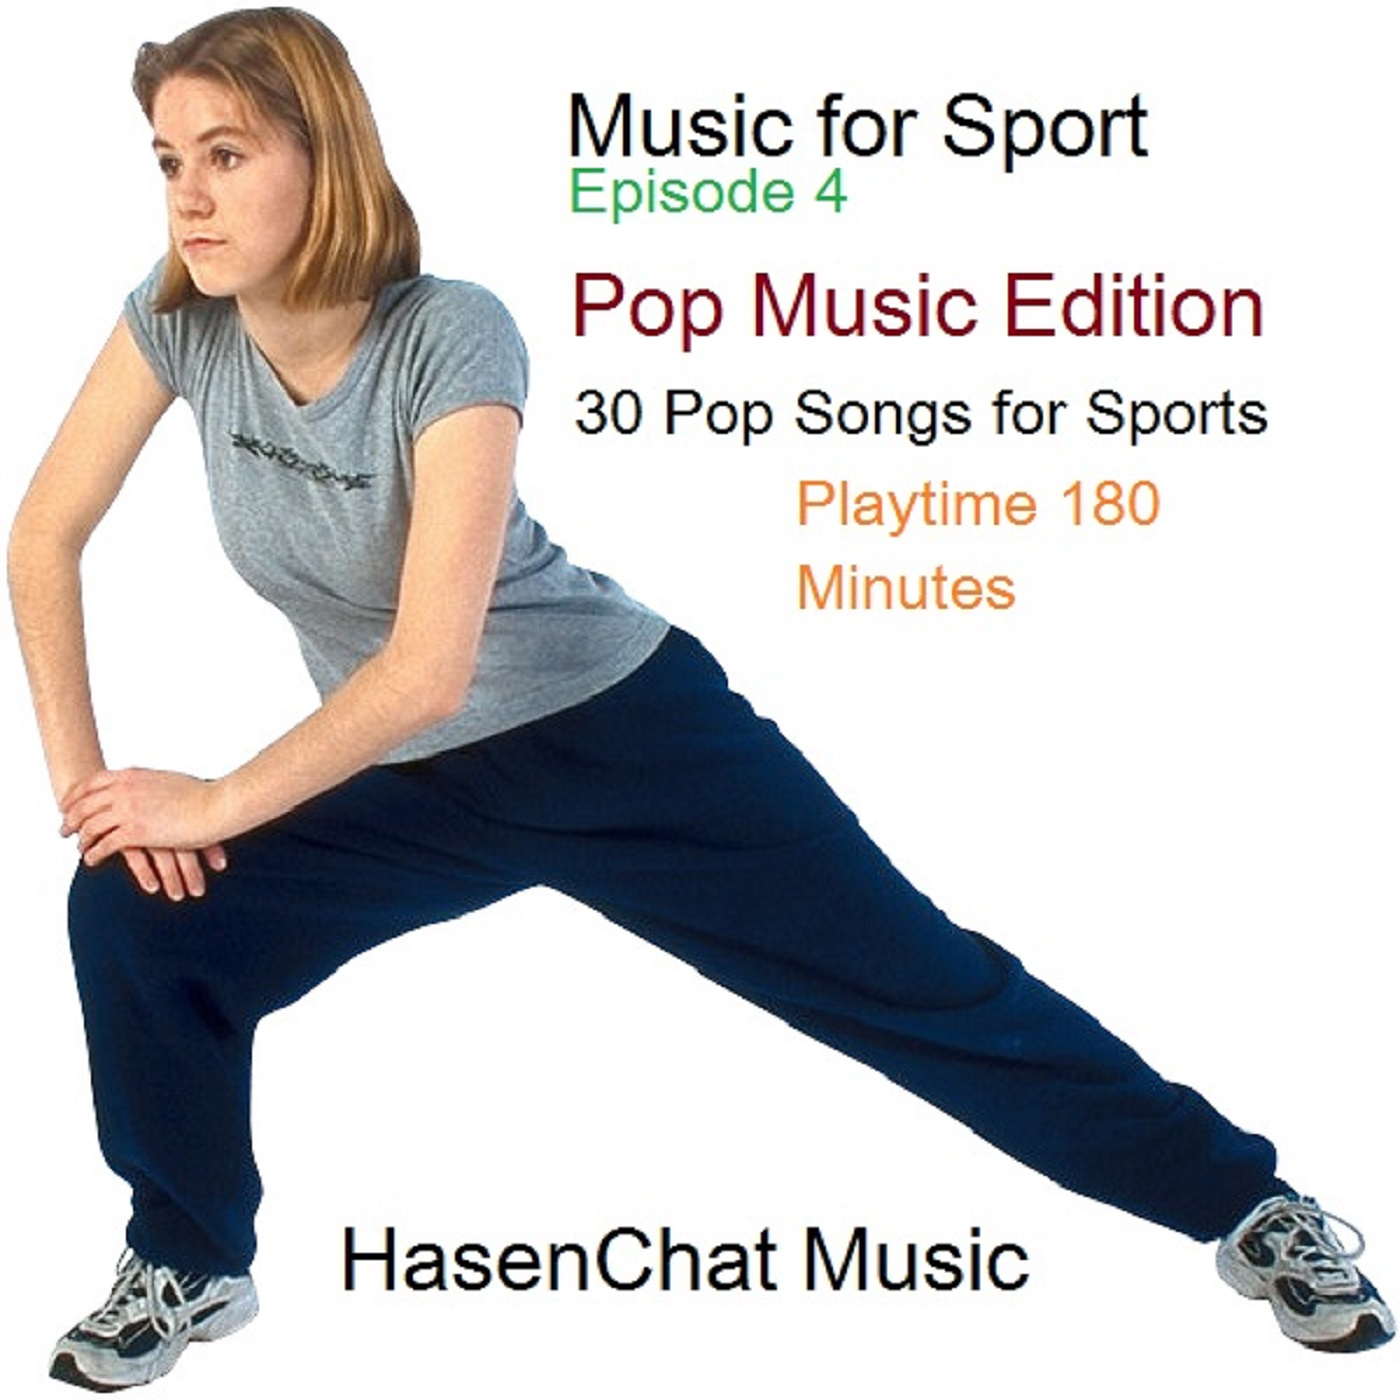 HasenChat Music - Music for Sport - Episode 4